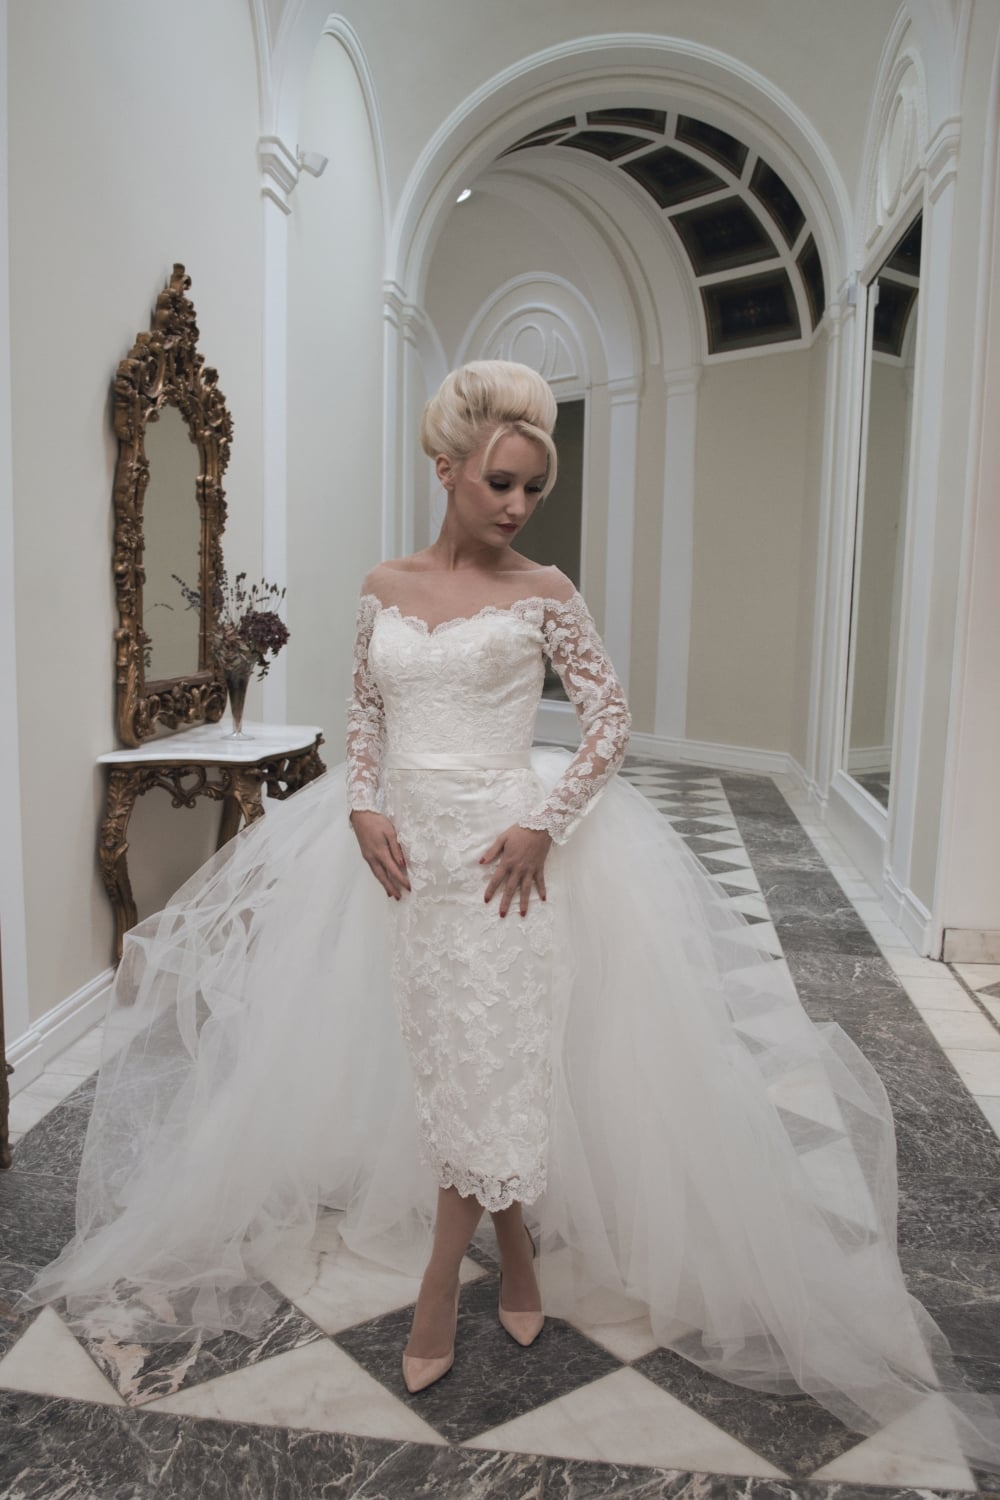 new arrival tulle short wedding dresses with detachable train long sleeve b short fitted wedding dresses White Long Sleeve Detached Wedding Dresses High